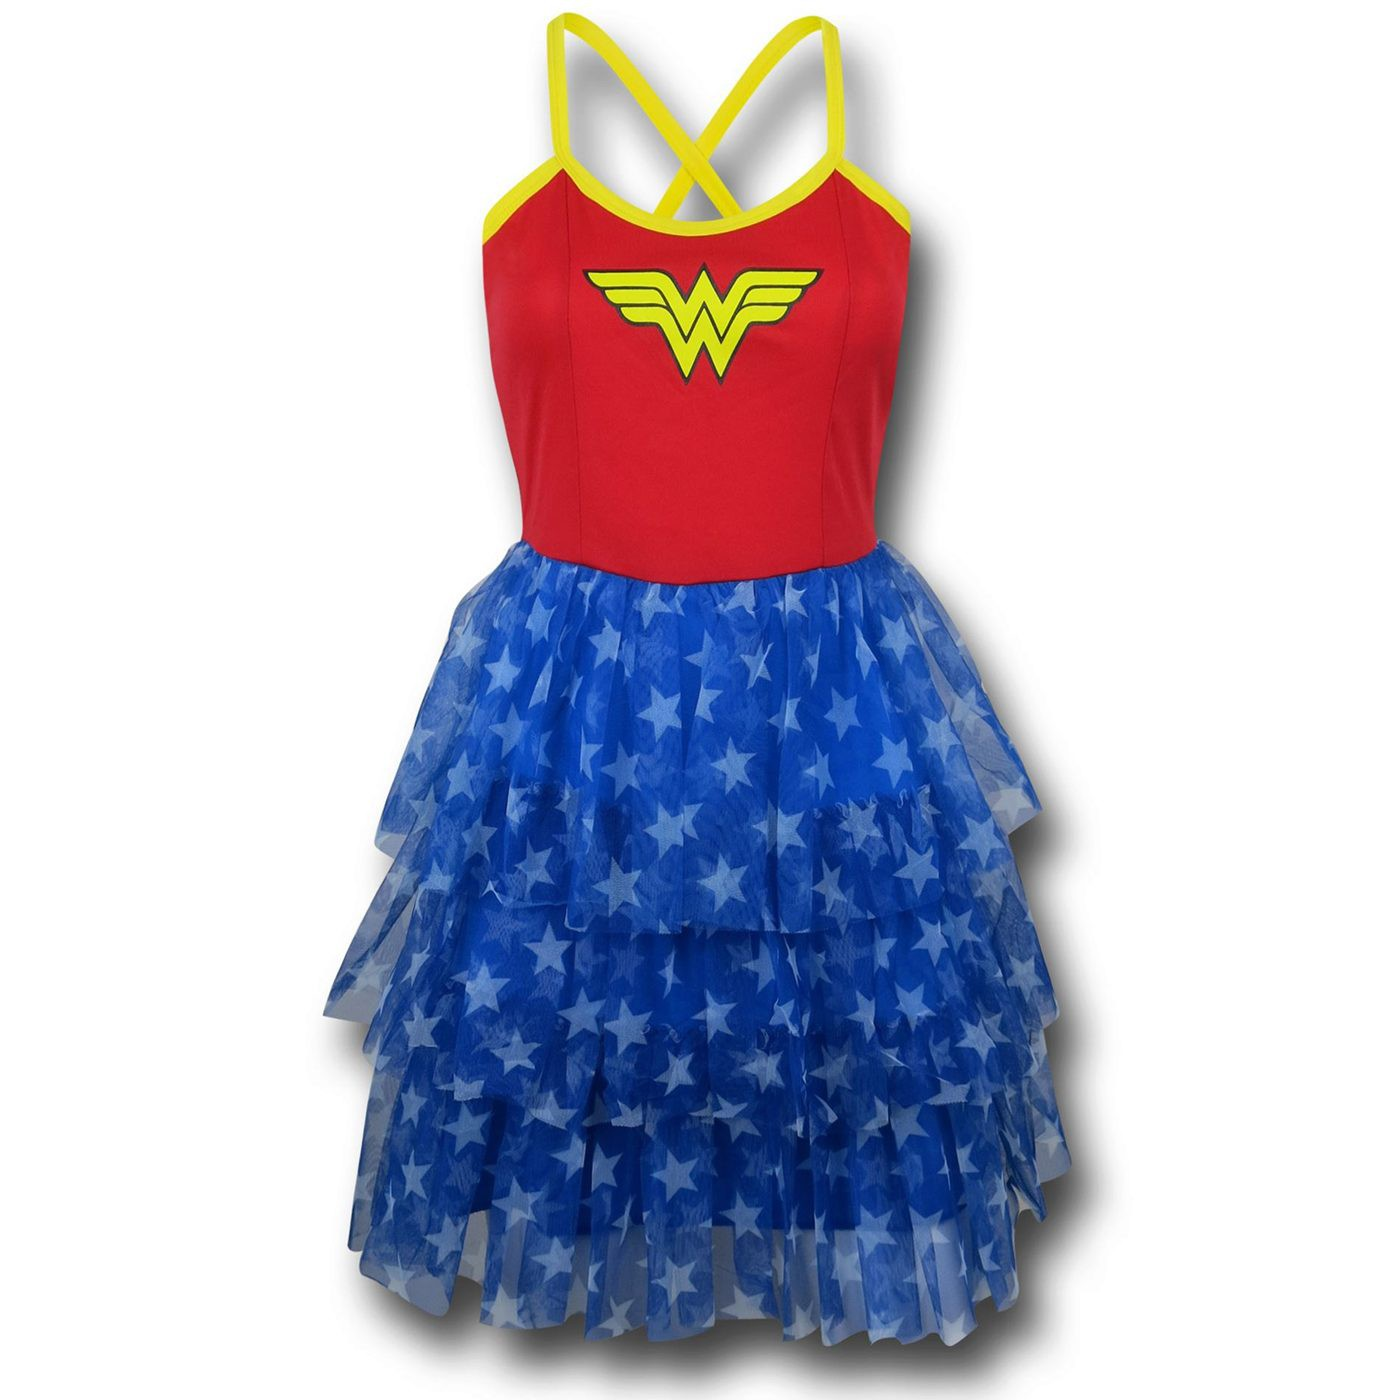 Wonder Woman Women's Mini Skirt Dress